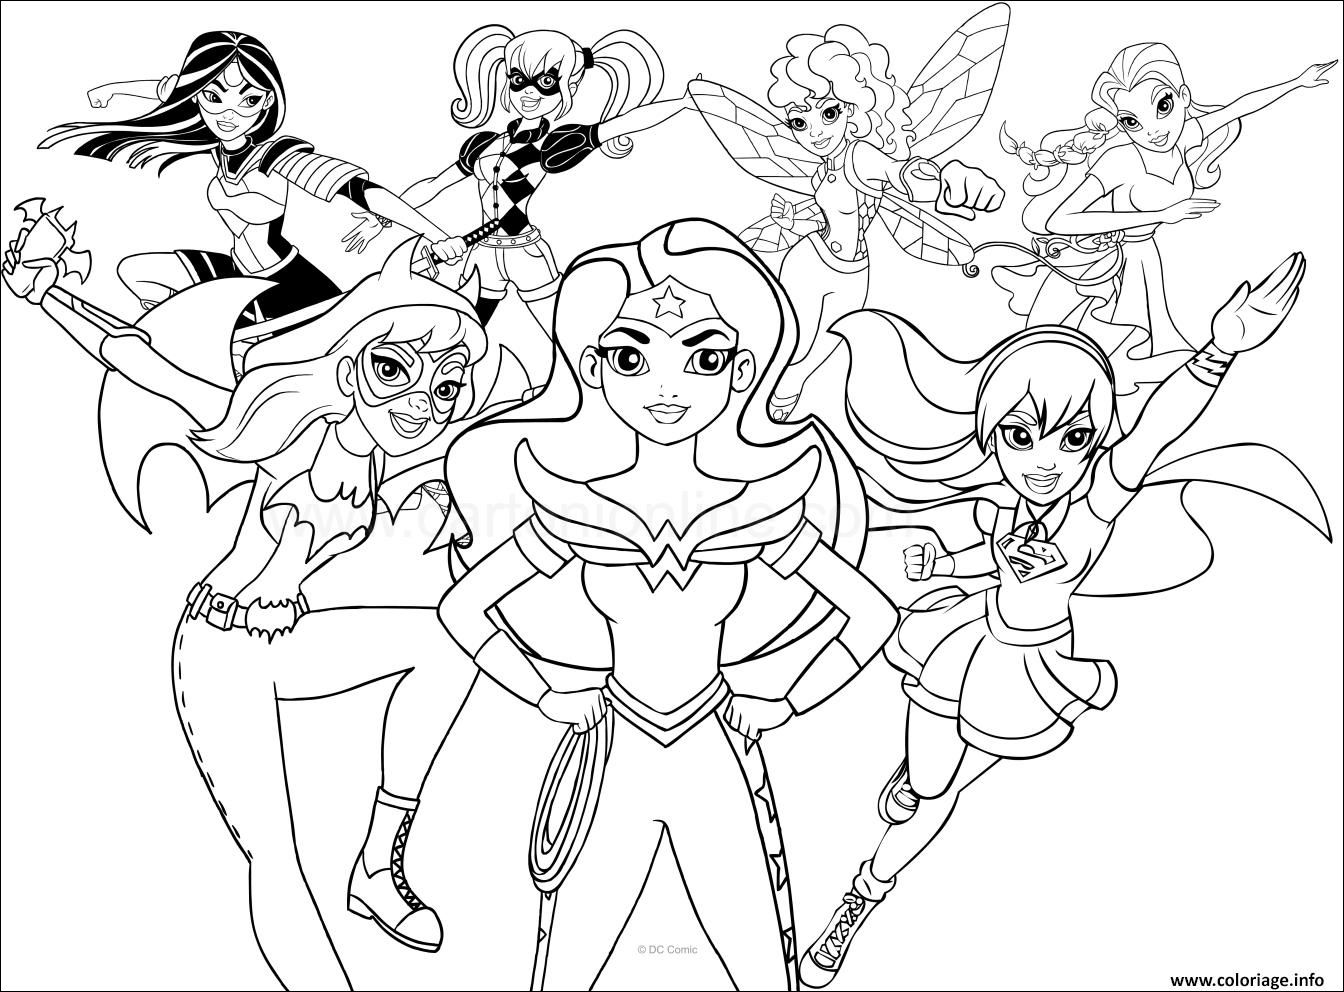 13 Present Coloriage Super Heros Girl Pictures Superhero Coloring Pages Superhero Coloring Super Hero Coloring Sheets